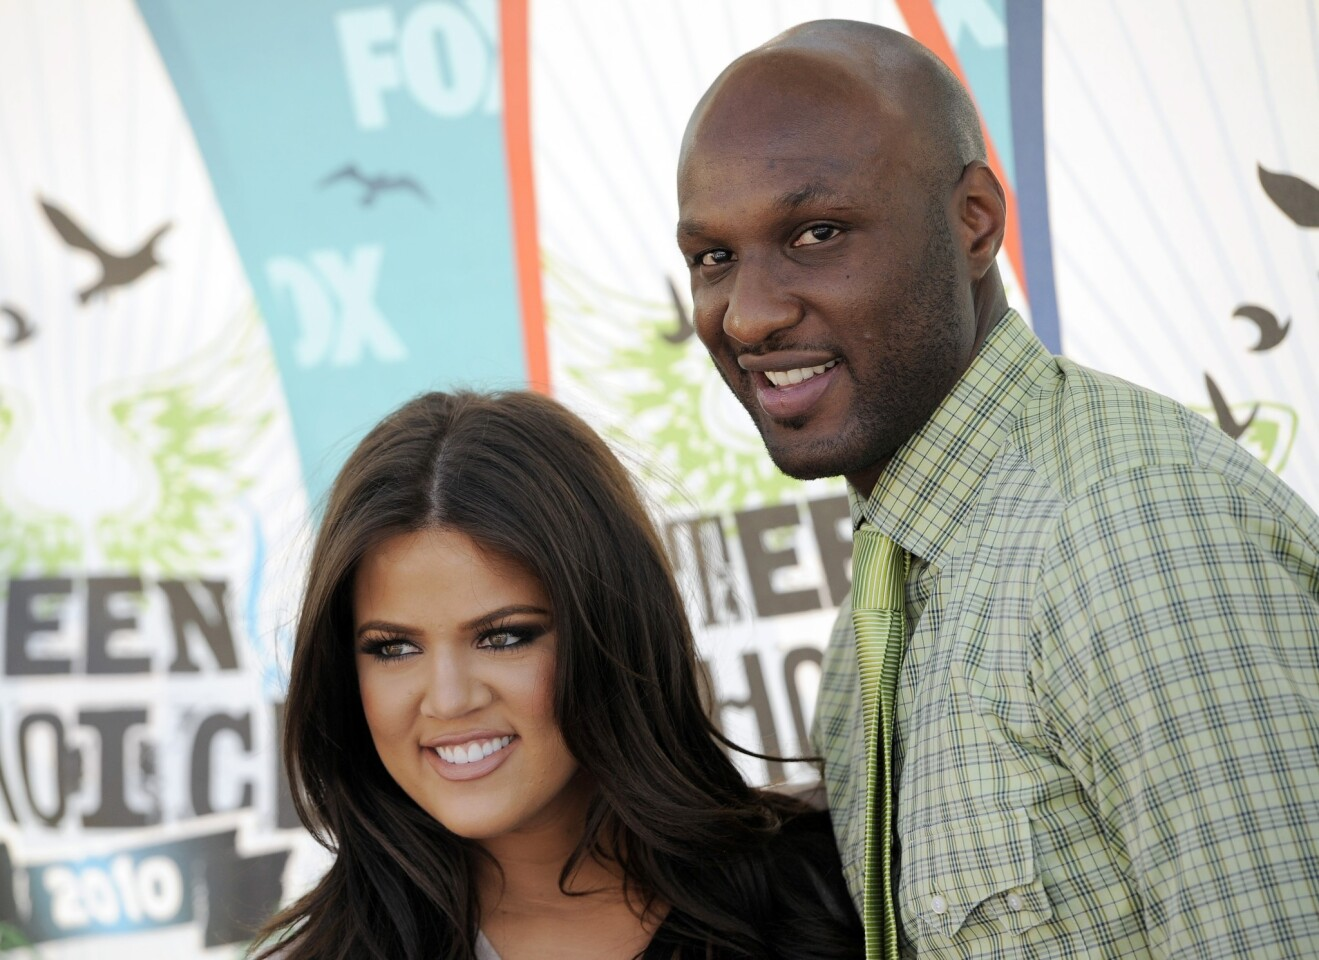 "After a whirlwind year for the ""Keeping Up With the Kardashians"" star and her NBA player husband, Khloe Kardashian finally filed for divorce on Dec. 13, 2013, following months of allegations of both infidelity and drug abuse swirling around her husband, according to TMZ. The couple married in September 2009 after a whirlwind one-month courtship. Kardashian cited ""irreconcilable differences"" in the filing and asked that the ""Odom"" be removed from her legal name, seeking no spousal support and requesting that he seek none from her. Also in 2013, Kardashian's mother Kris Jenner and stepdad Bruce Jenner announced that they had separated, and sister Kim Kardashian finalized her year-and-a-half divorce from basketball player Kris Humphries. MORE: Khloe Kardashian files for divorce from Lamar Odom"